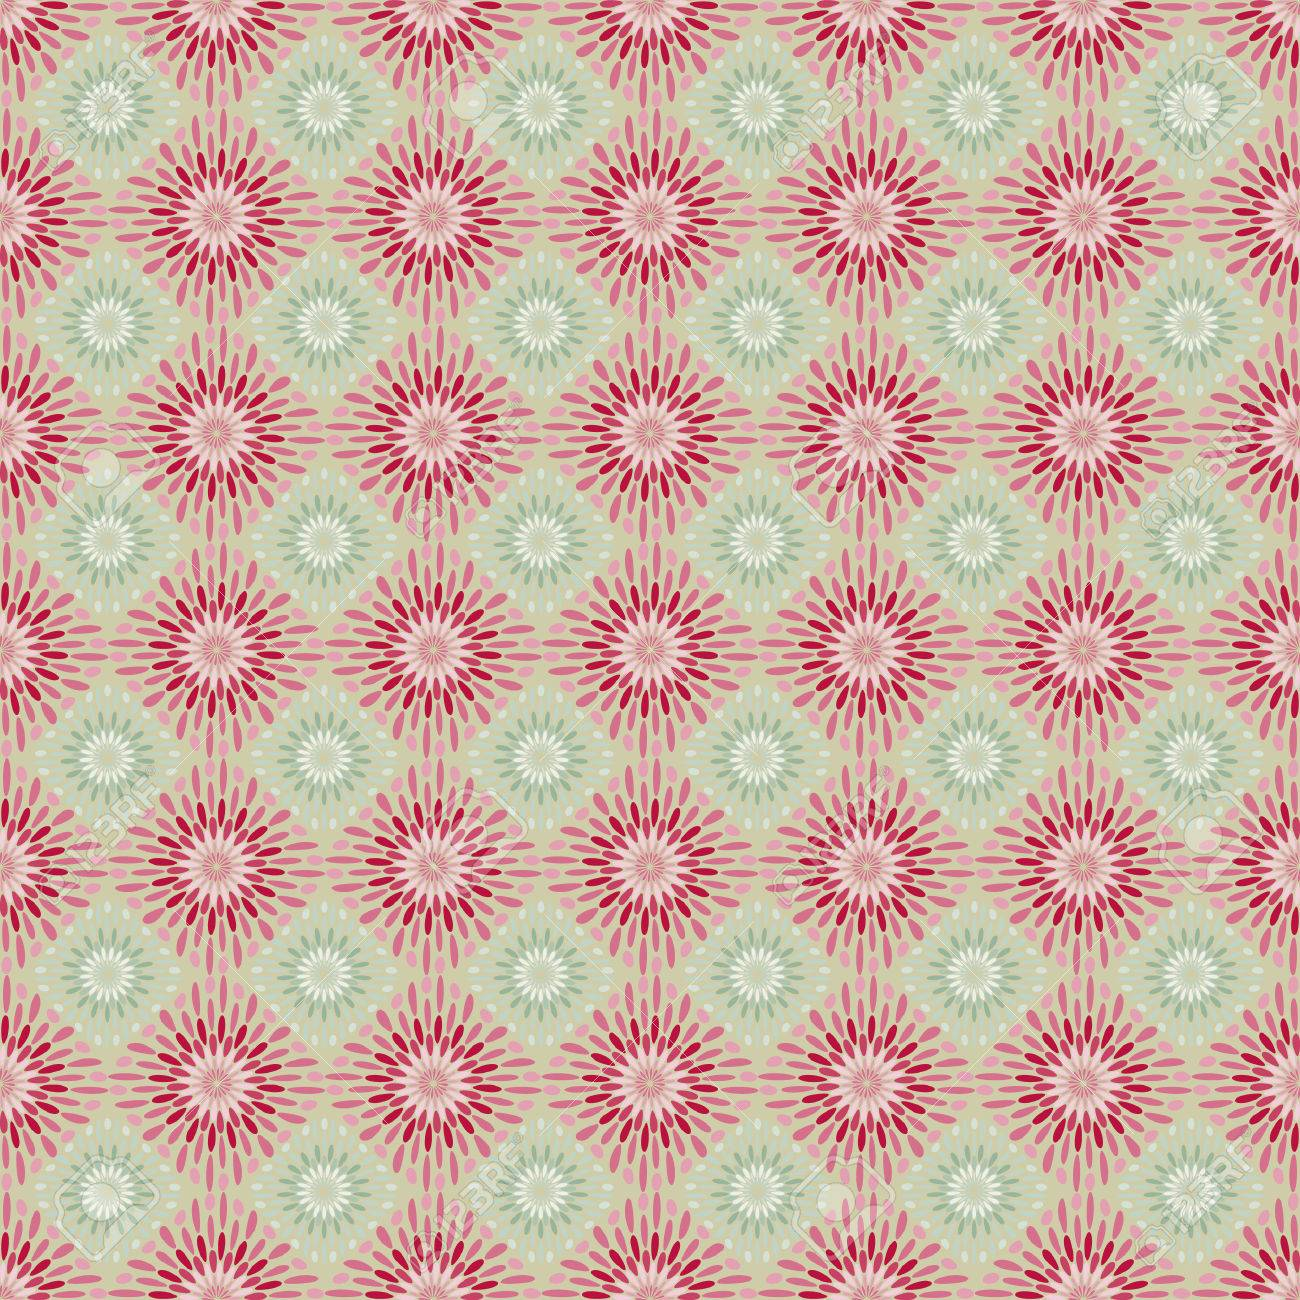 Red and green retro flower seamless pattern. Stock Vector - 5612178